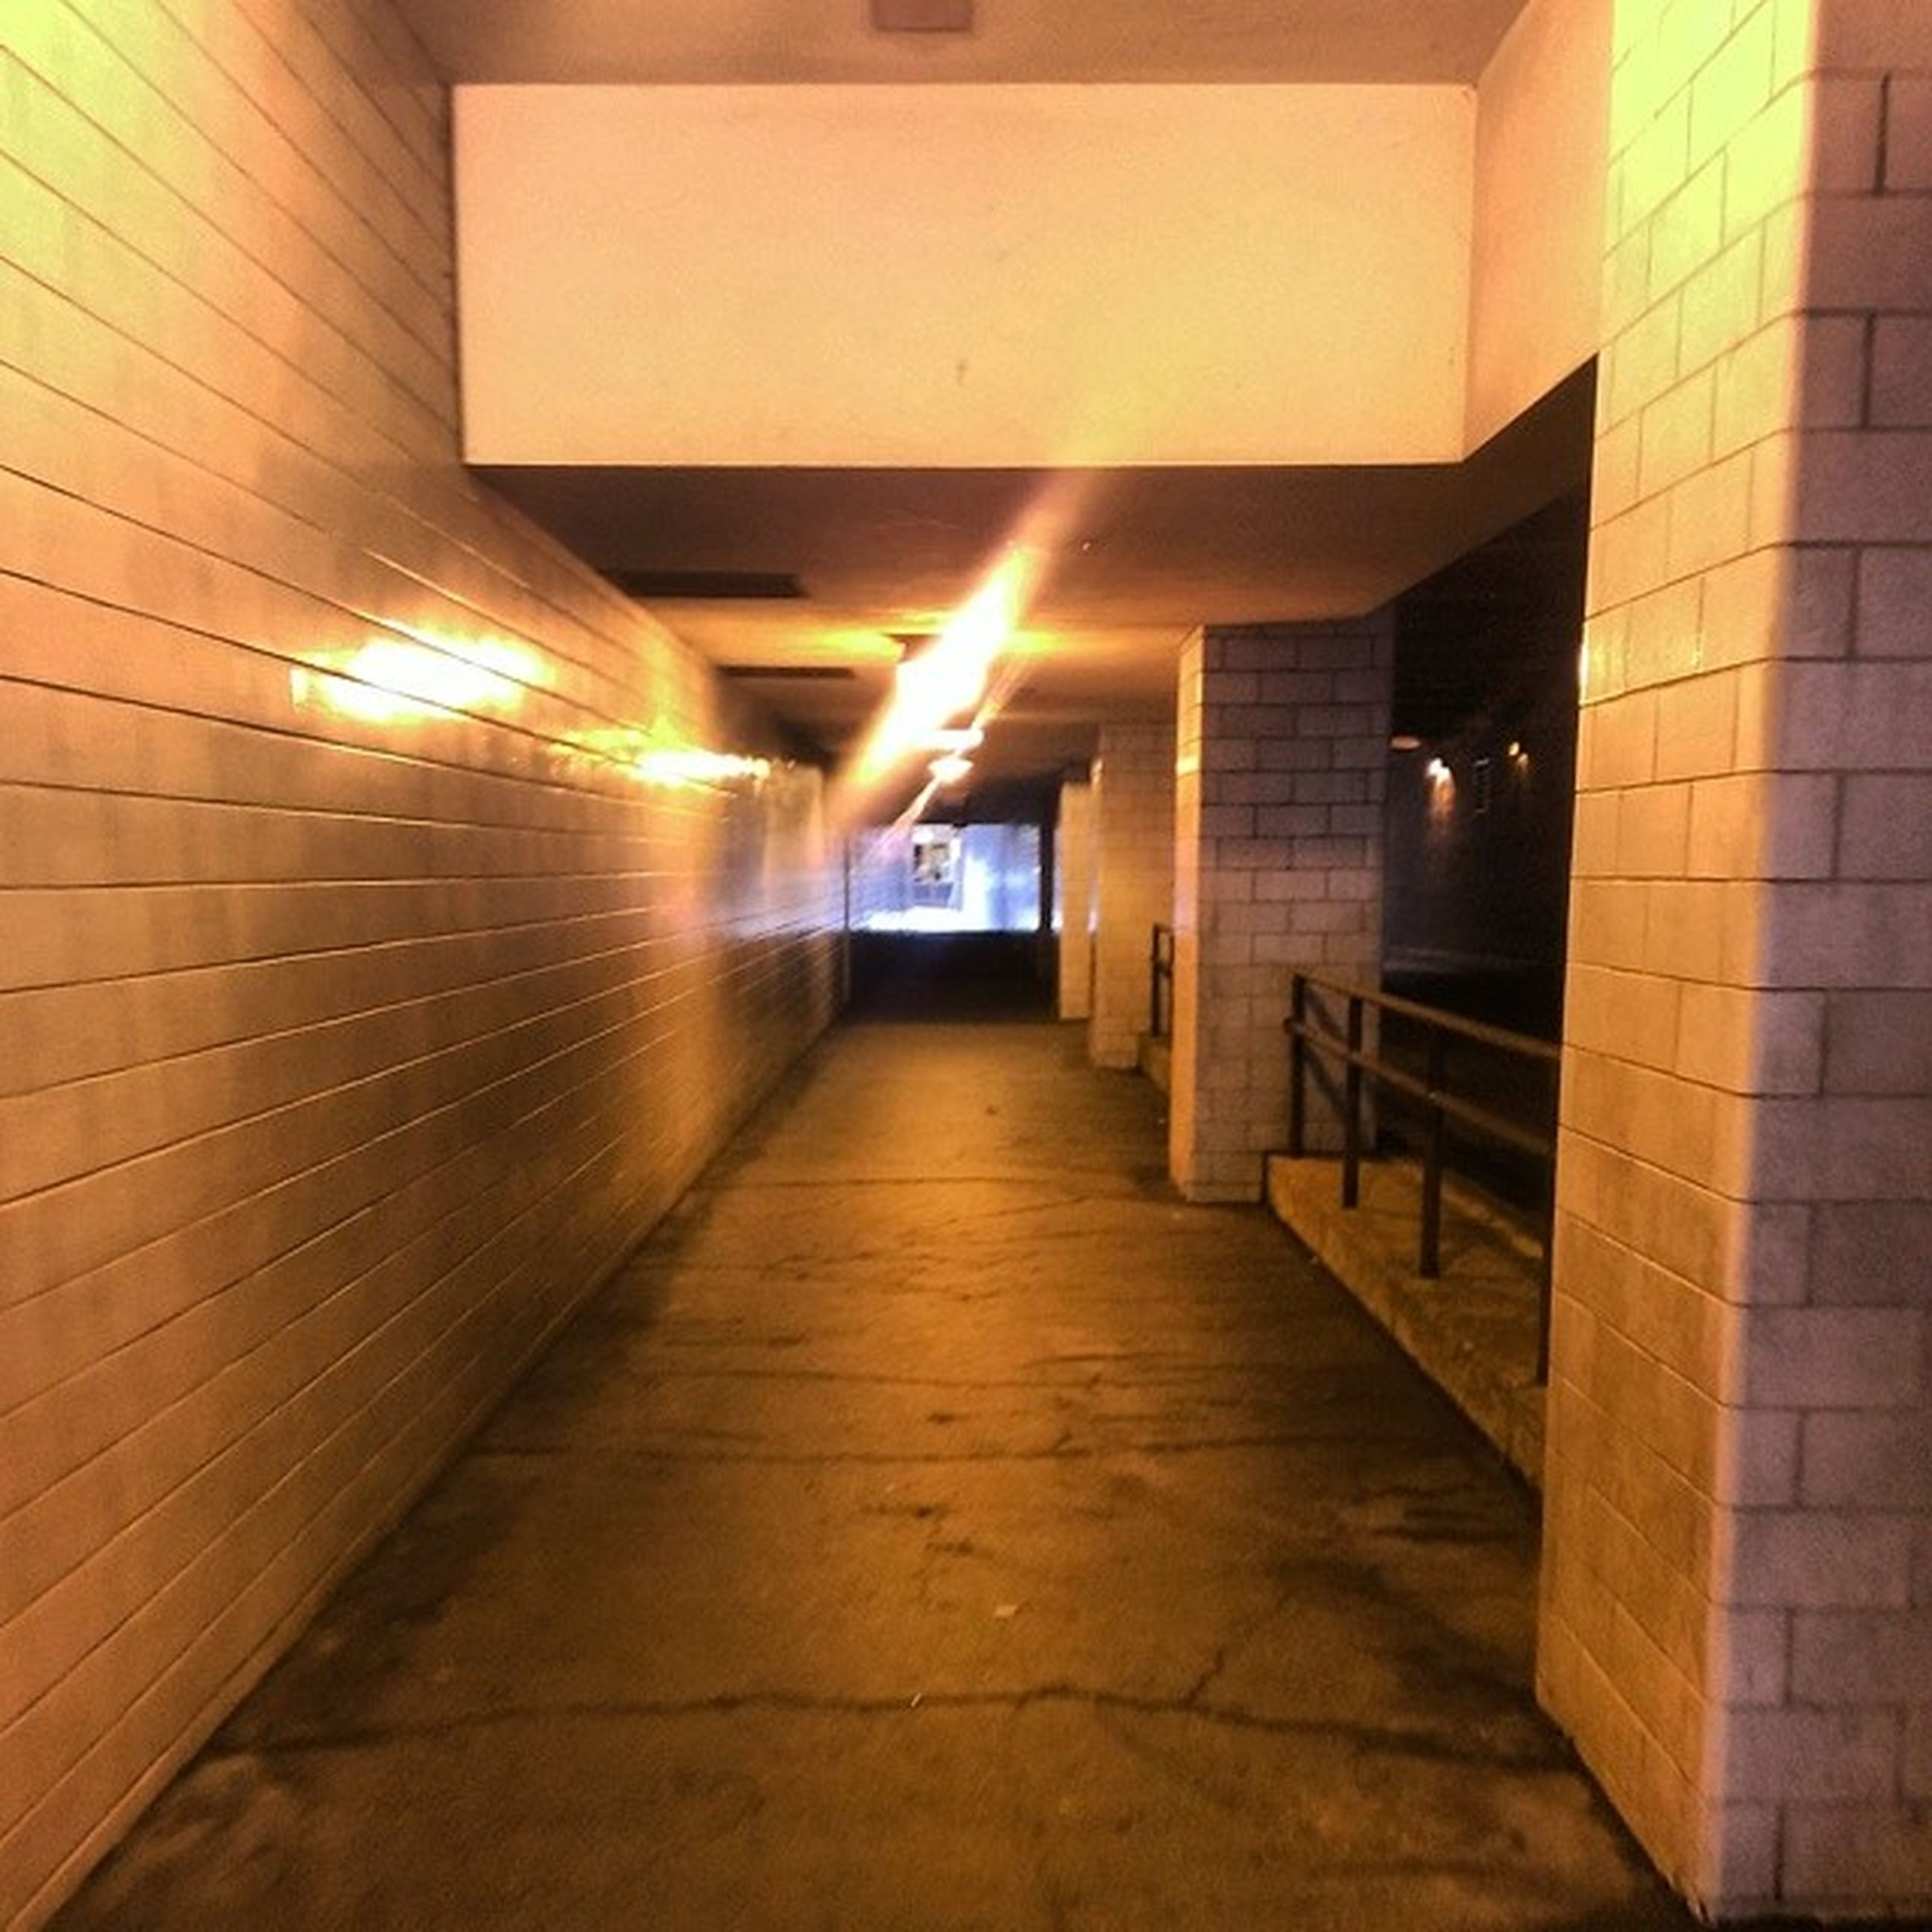 architecture, illuminated, built structure, the way forward, building exterior, lighting equipment, night, corridor, building, diminishing perspective, indoors, empty, wall - building feature, city, light - natural phenomenon, vanishing point, narrow, no people, flooring, absence